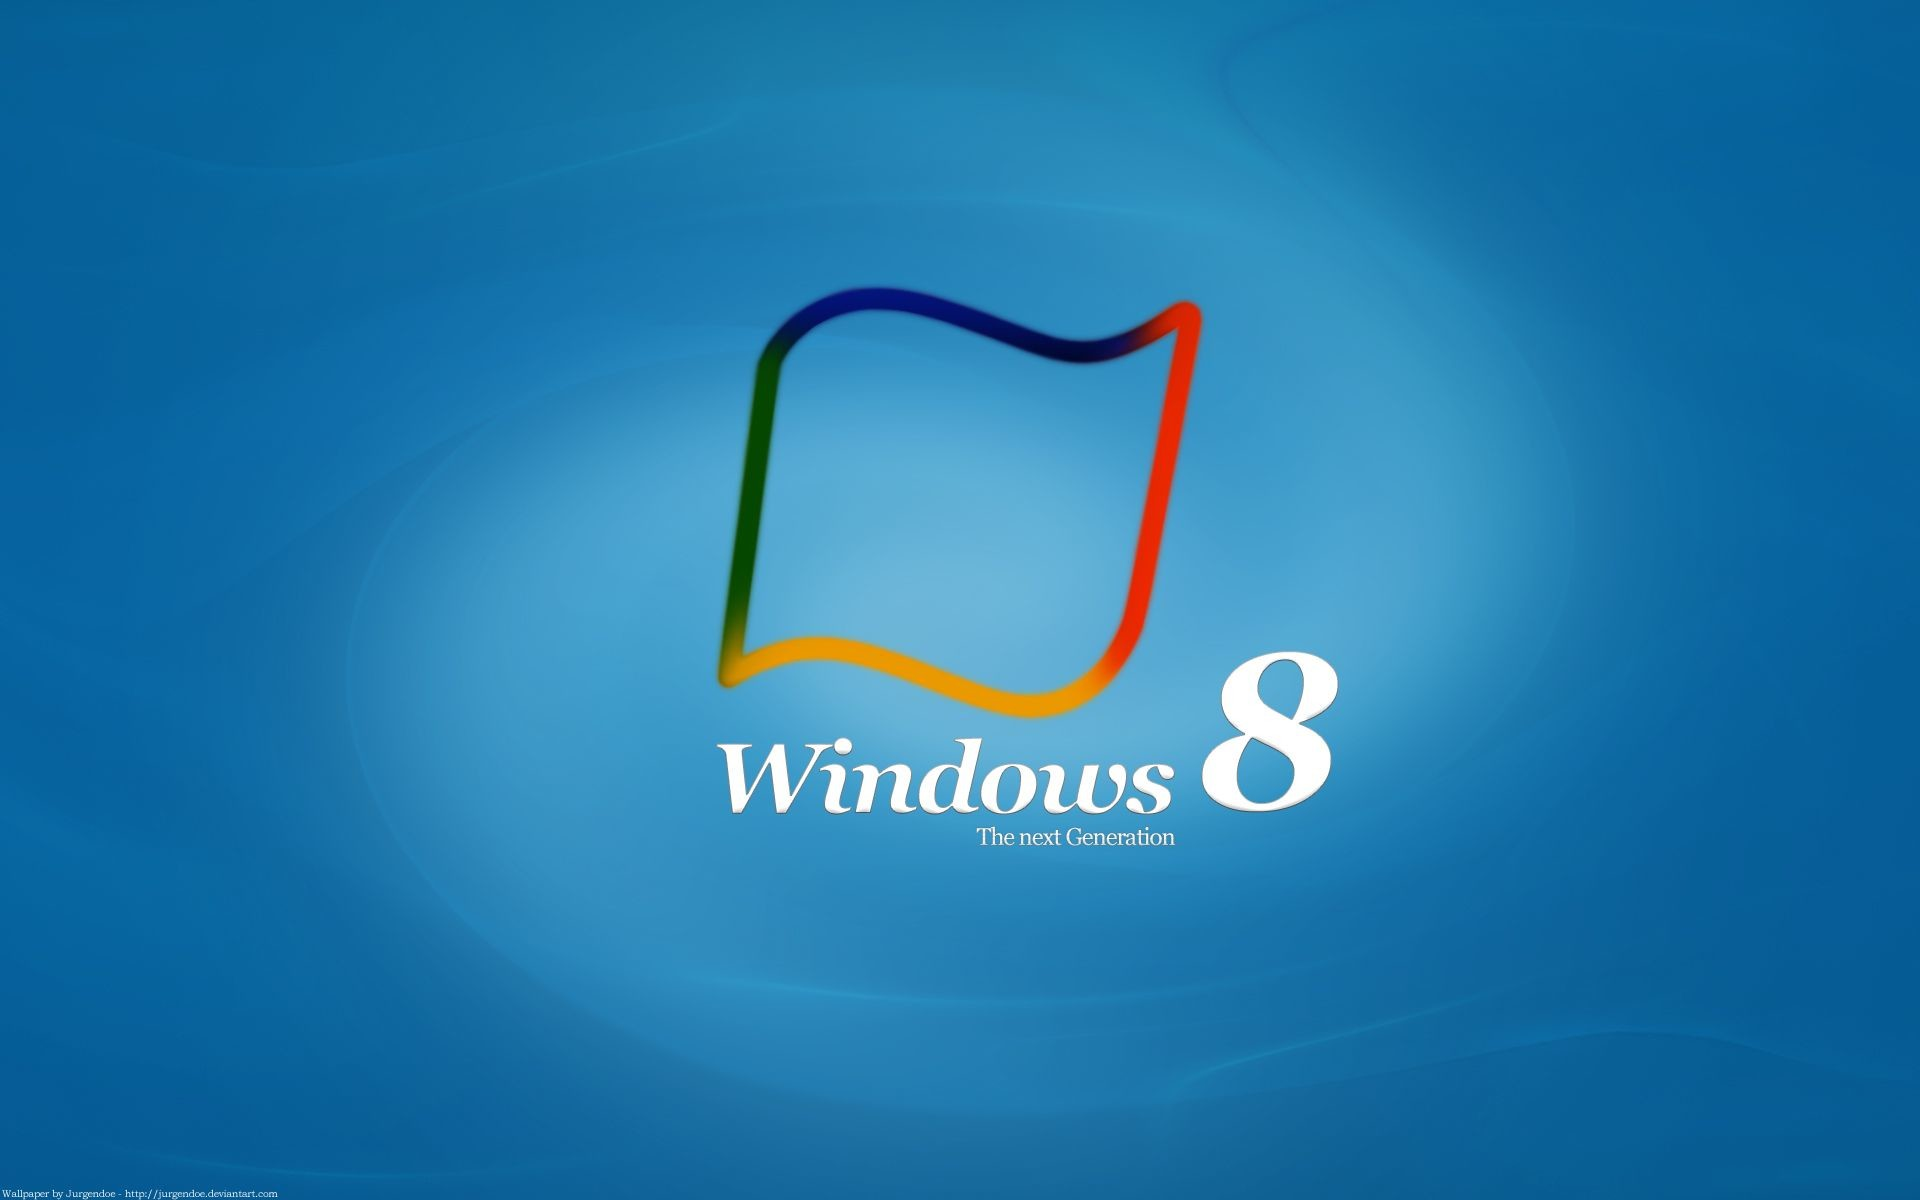 Windows 8 Wallpaper 1080p 74 Pictures